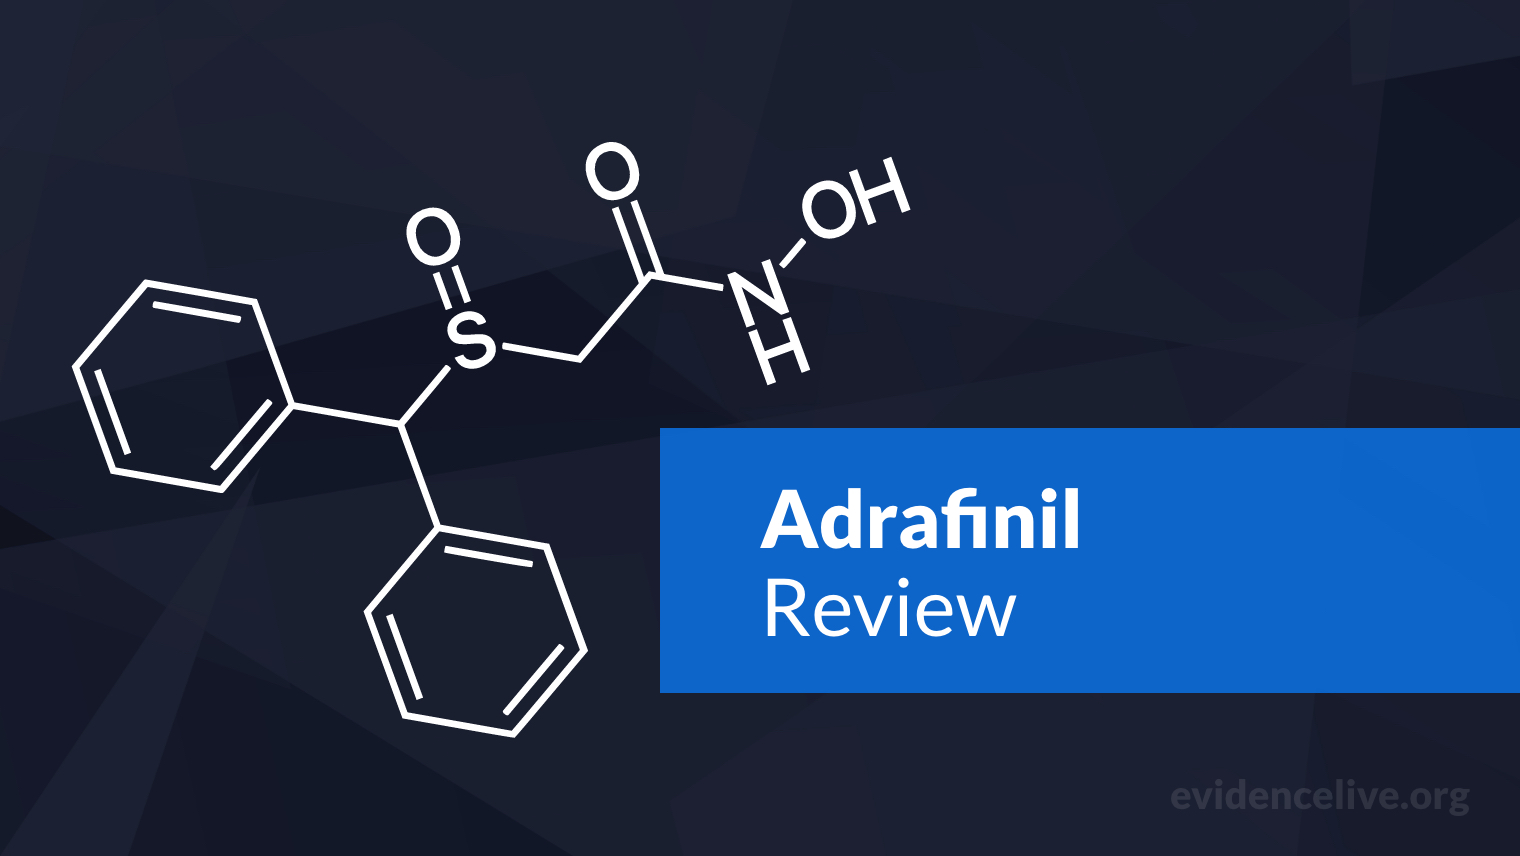 Adrafinil: Benefits, Uses, Dosage, and Side Effects